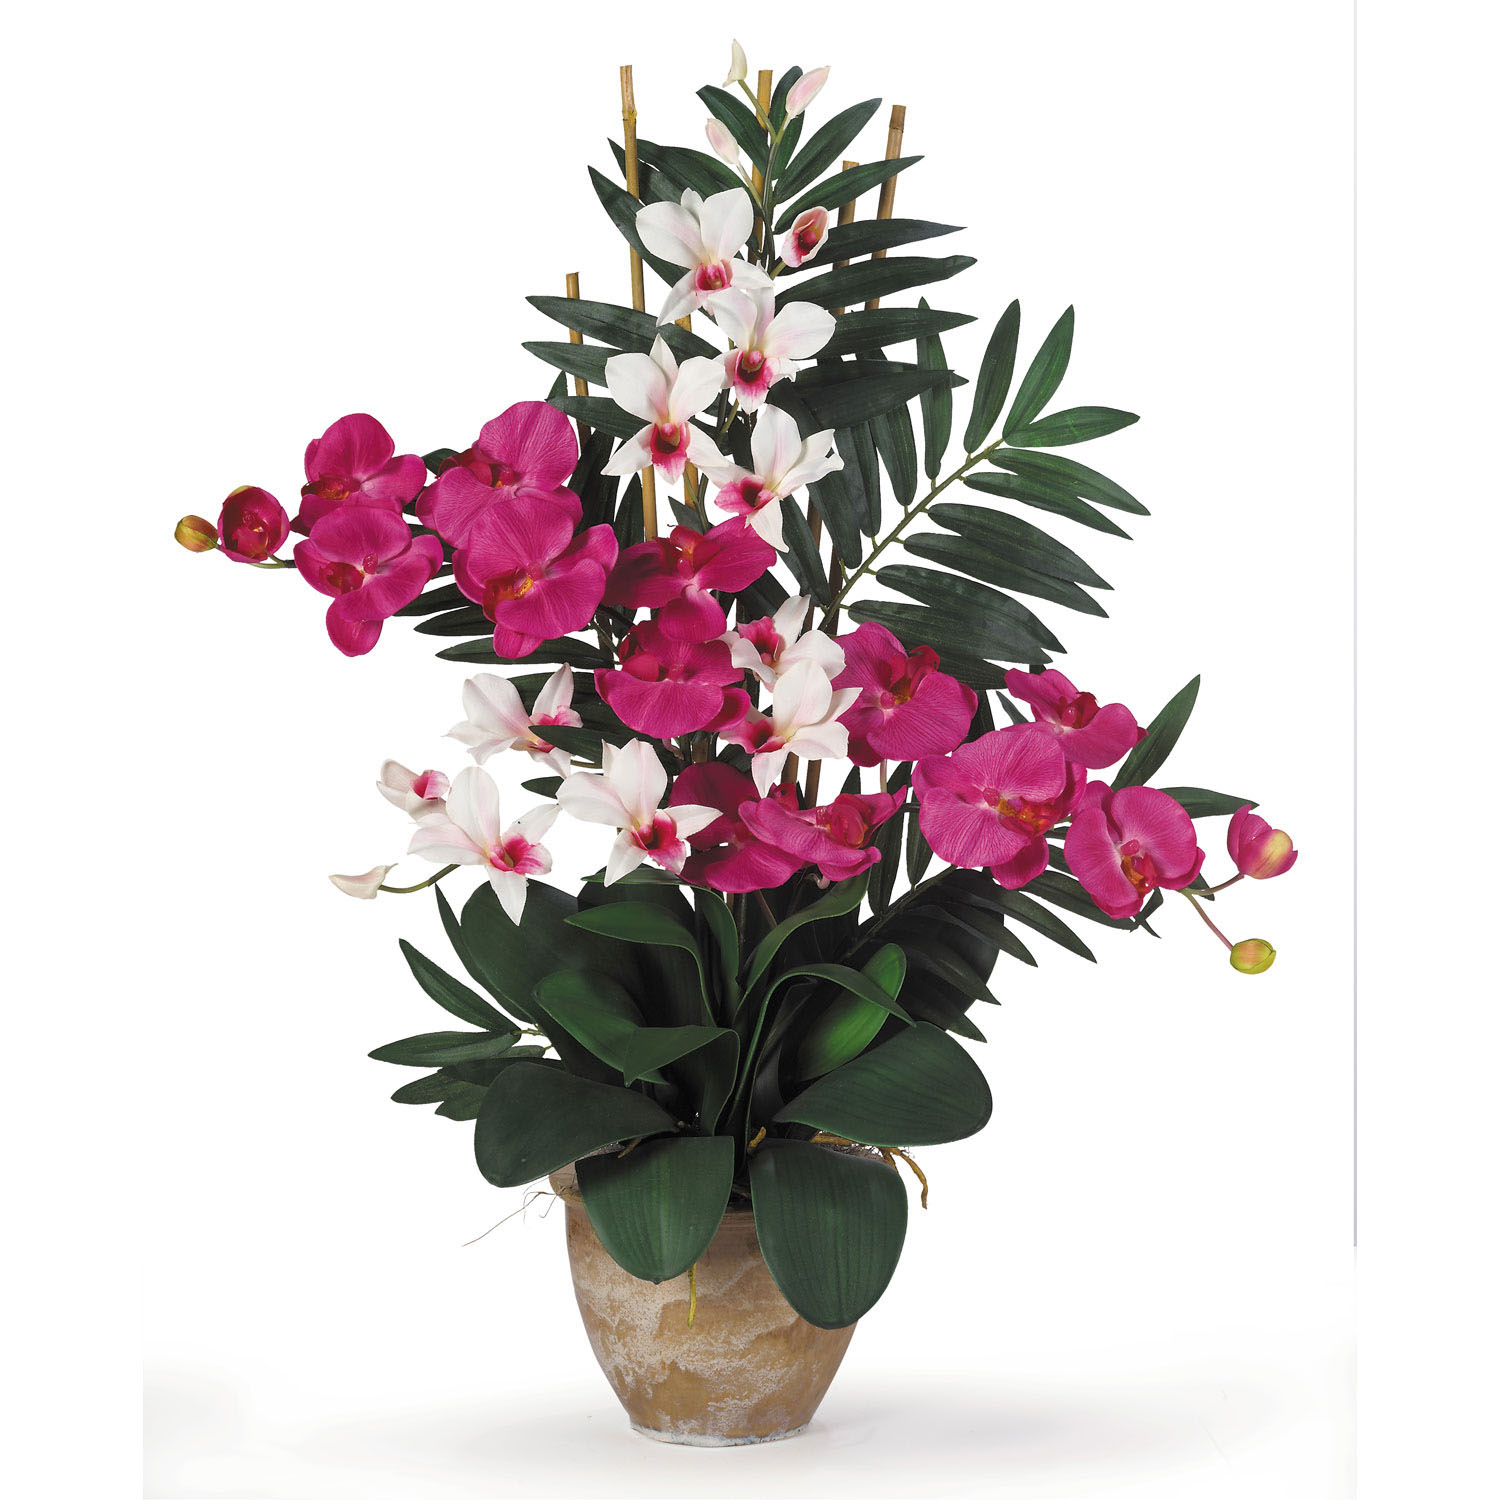 29IN Phalaenopsis Orchid & Dendrobium Orchid Arrangement in Planter Colo